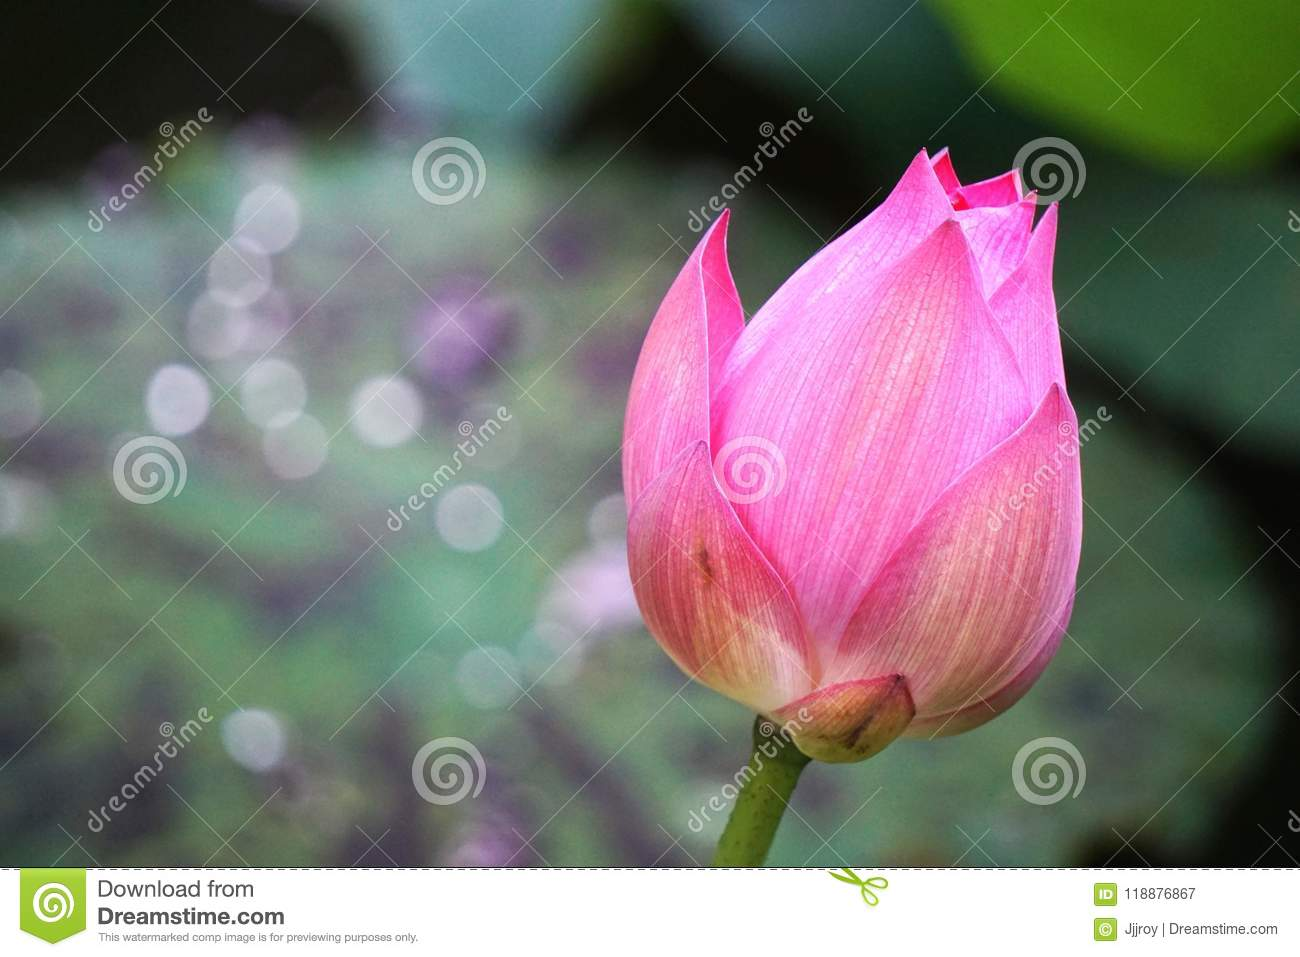 Beautiful Pink Lotus Flower Blossom With Blurred Green Bokeh